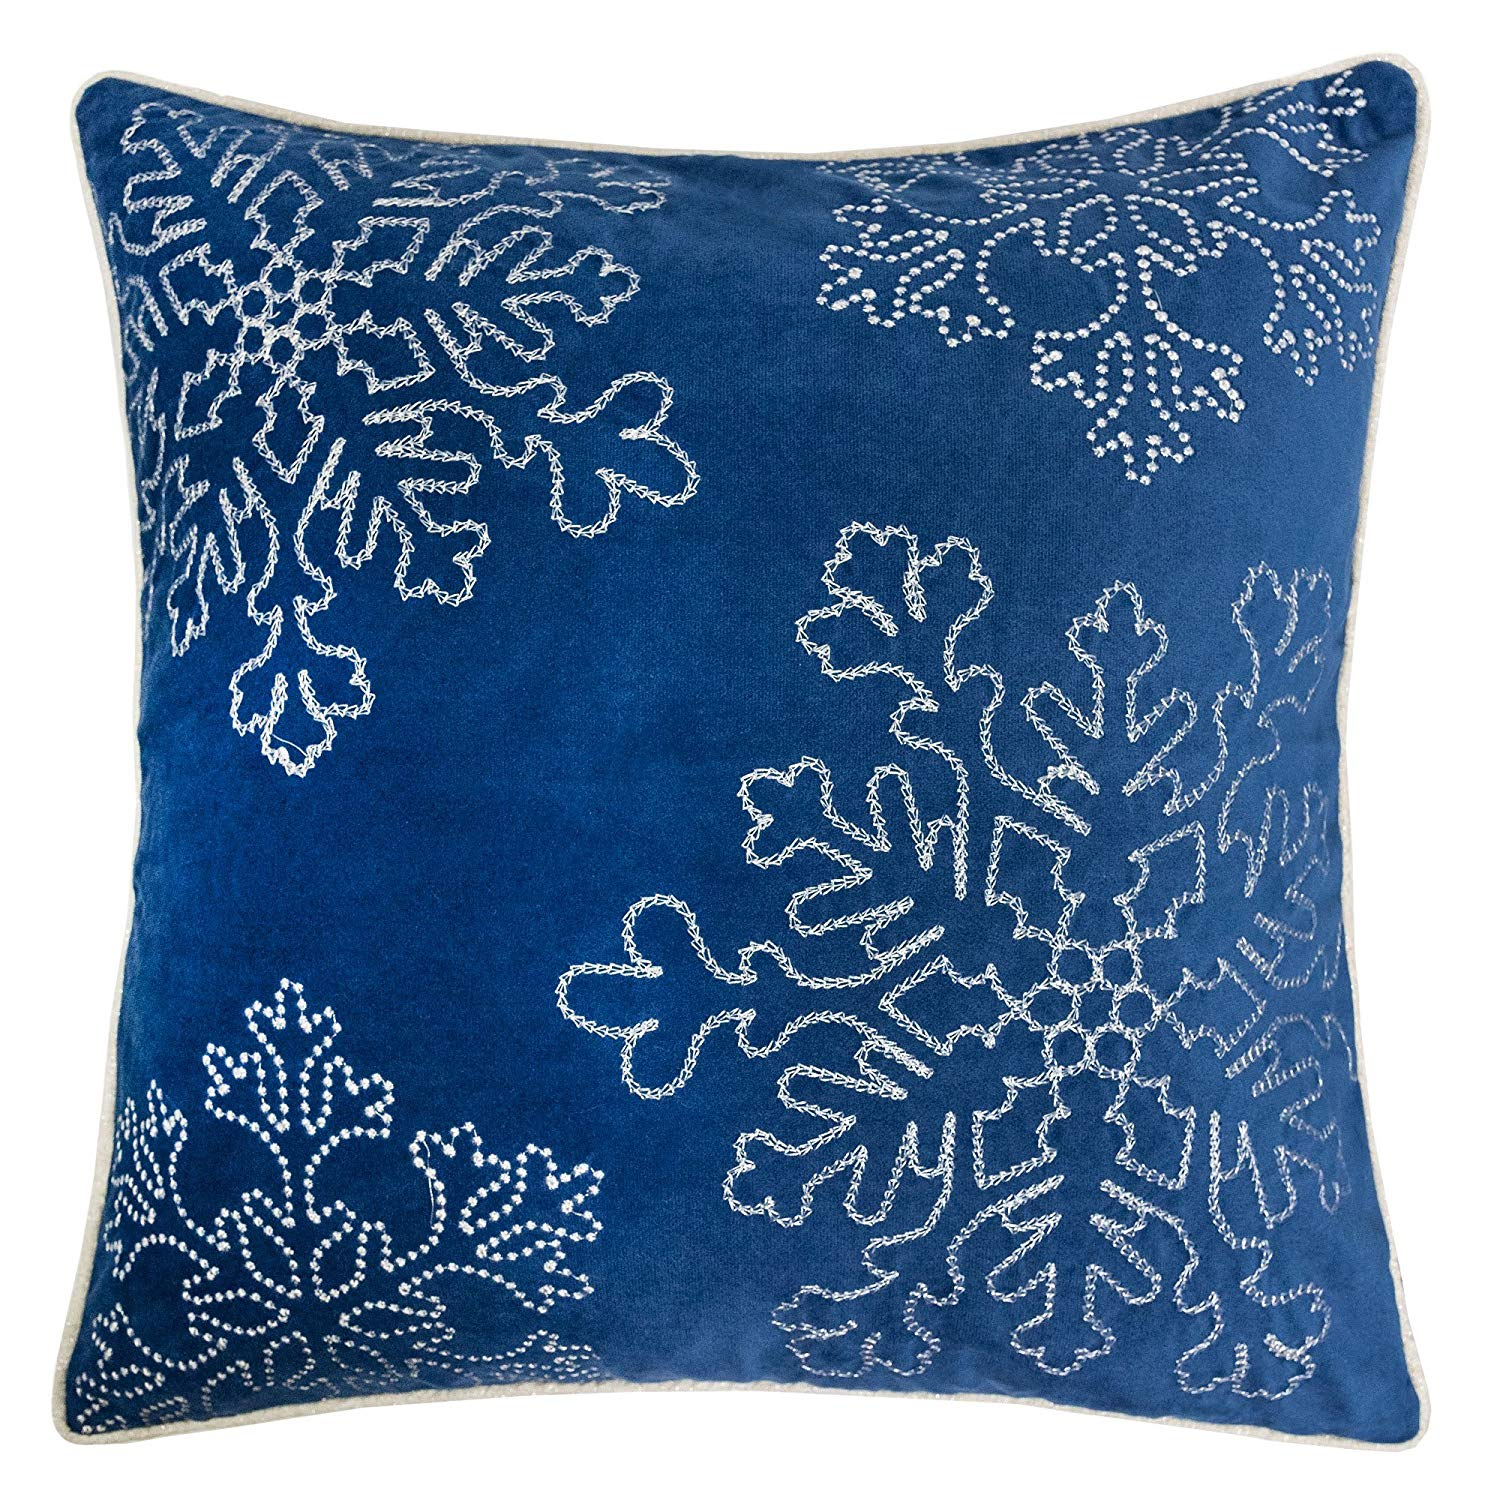 Velvet Navy Snowflake Pillow Cover